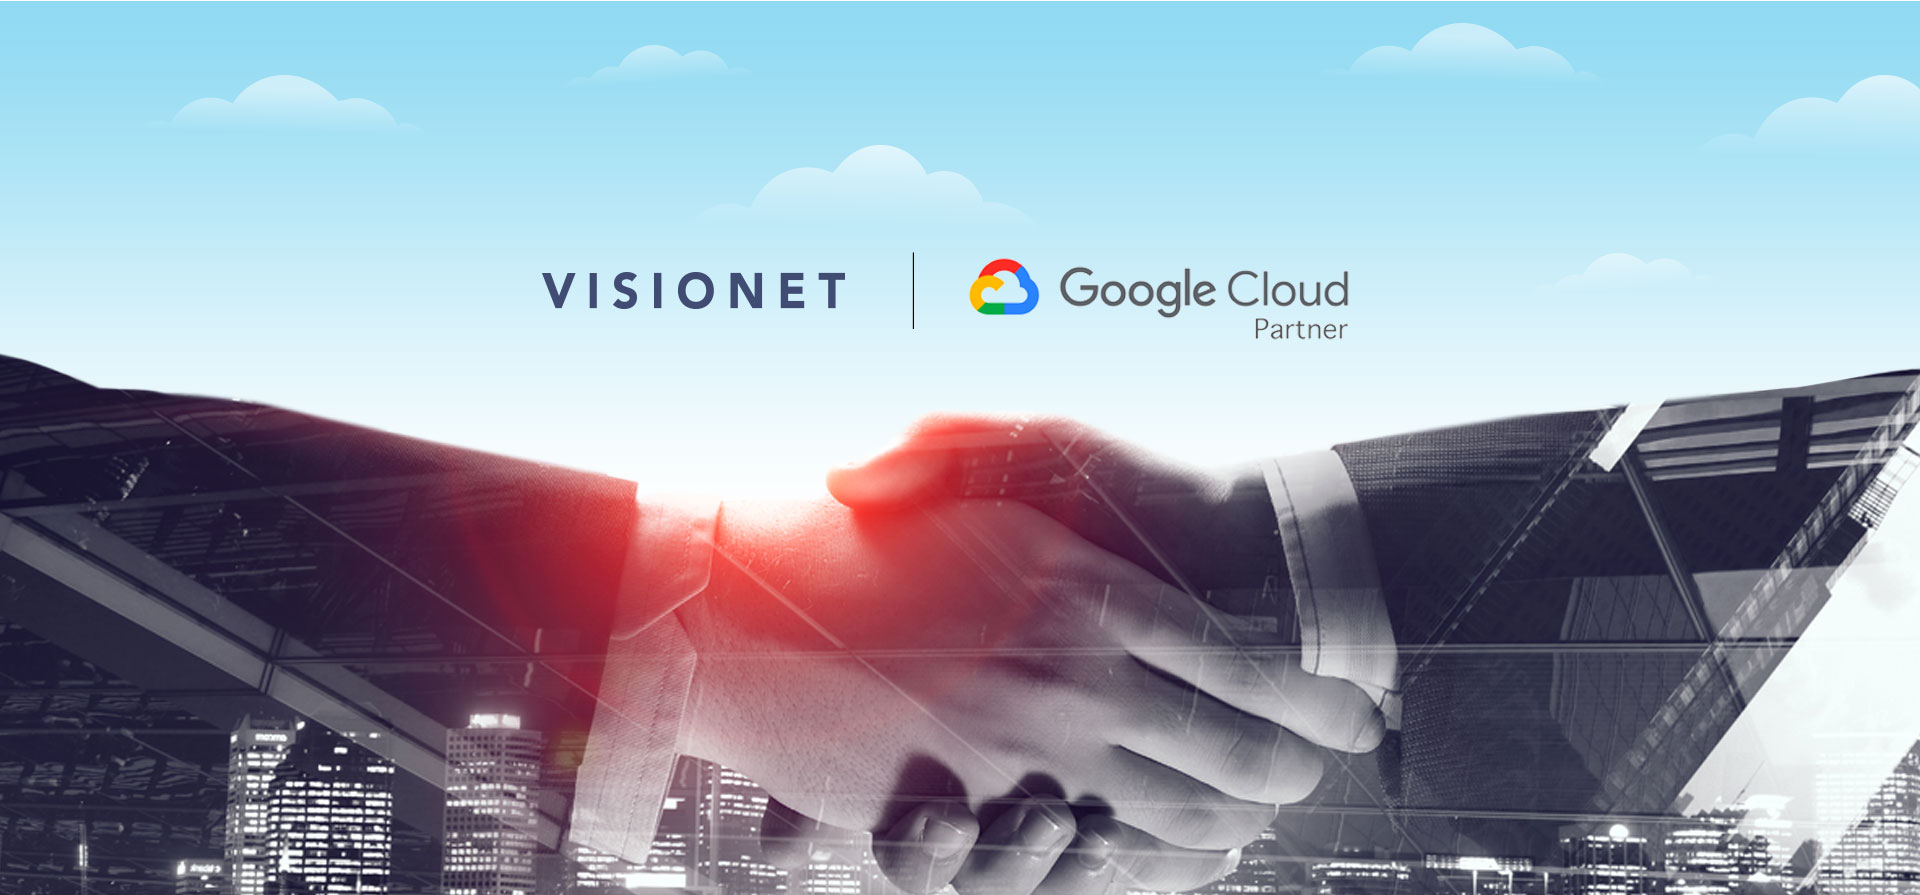 Visionet Systems Joins the Google Cloud Partner Advantage Program to Extend the Reach and Functionality of Its Data Analytics Solutions